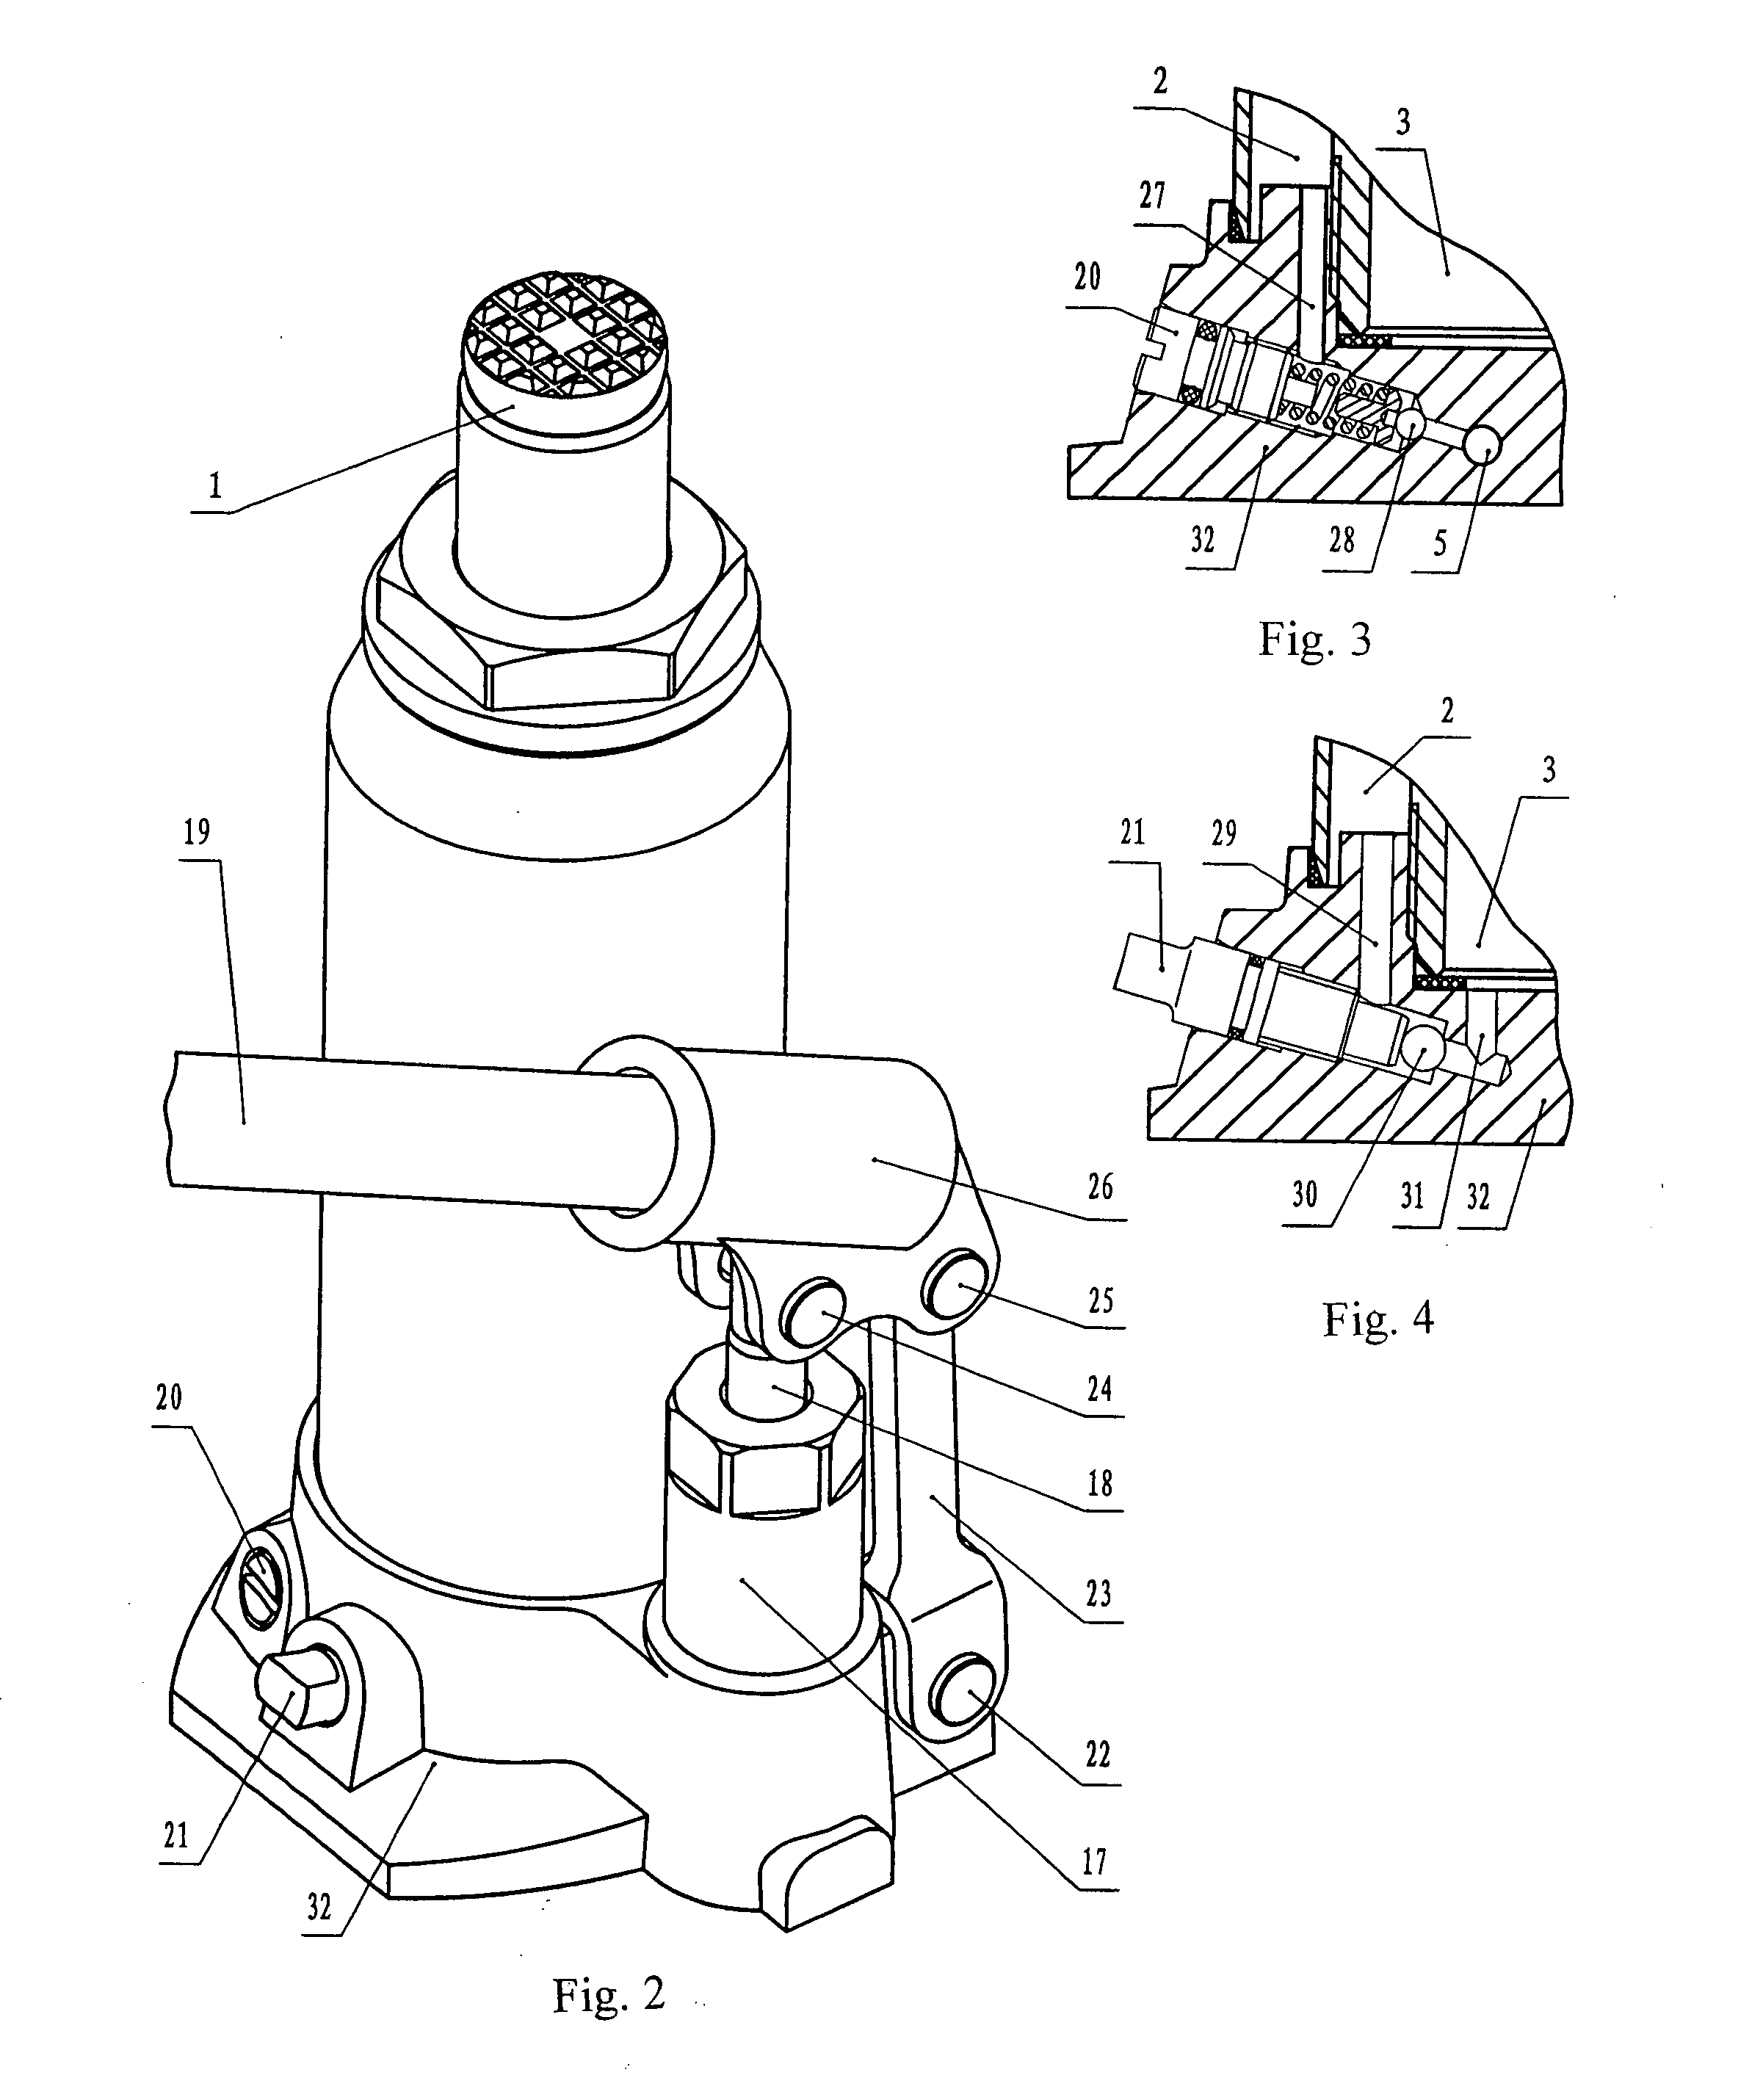 1690 Concealed Vertical Rod Detail also Steering Systems Automobile moreover Cube 20clipart 20base 2010 likewise Mercury besides T24302788 Mitsubibhi 4d34 model engine tightening. on connecting rod